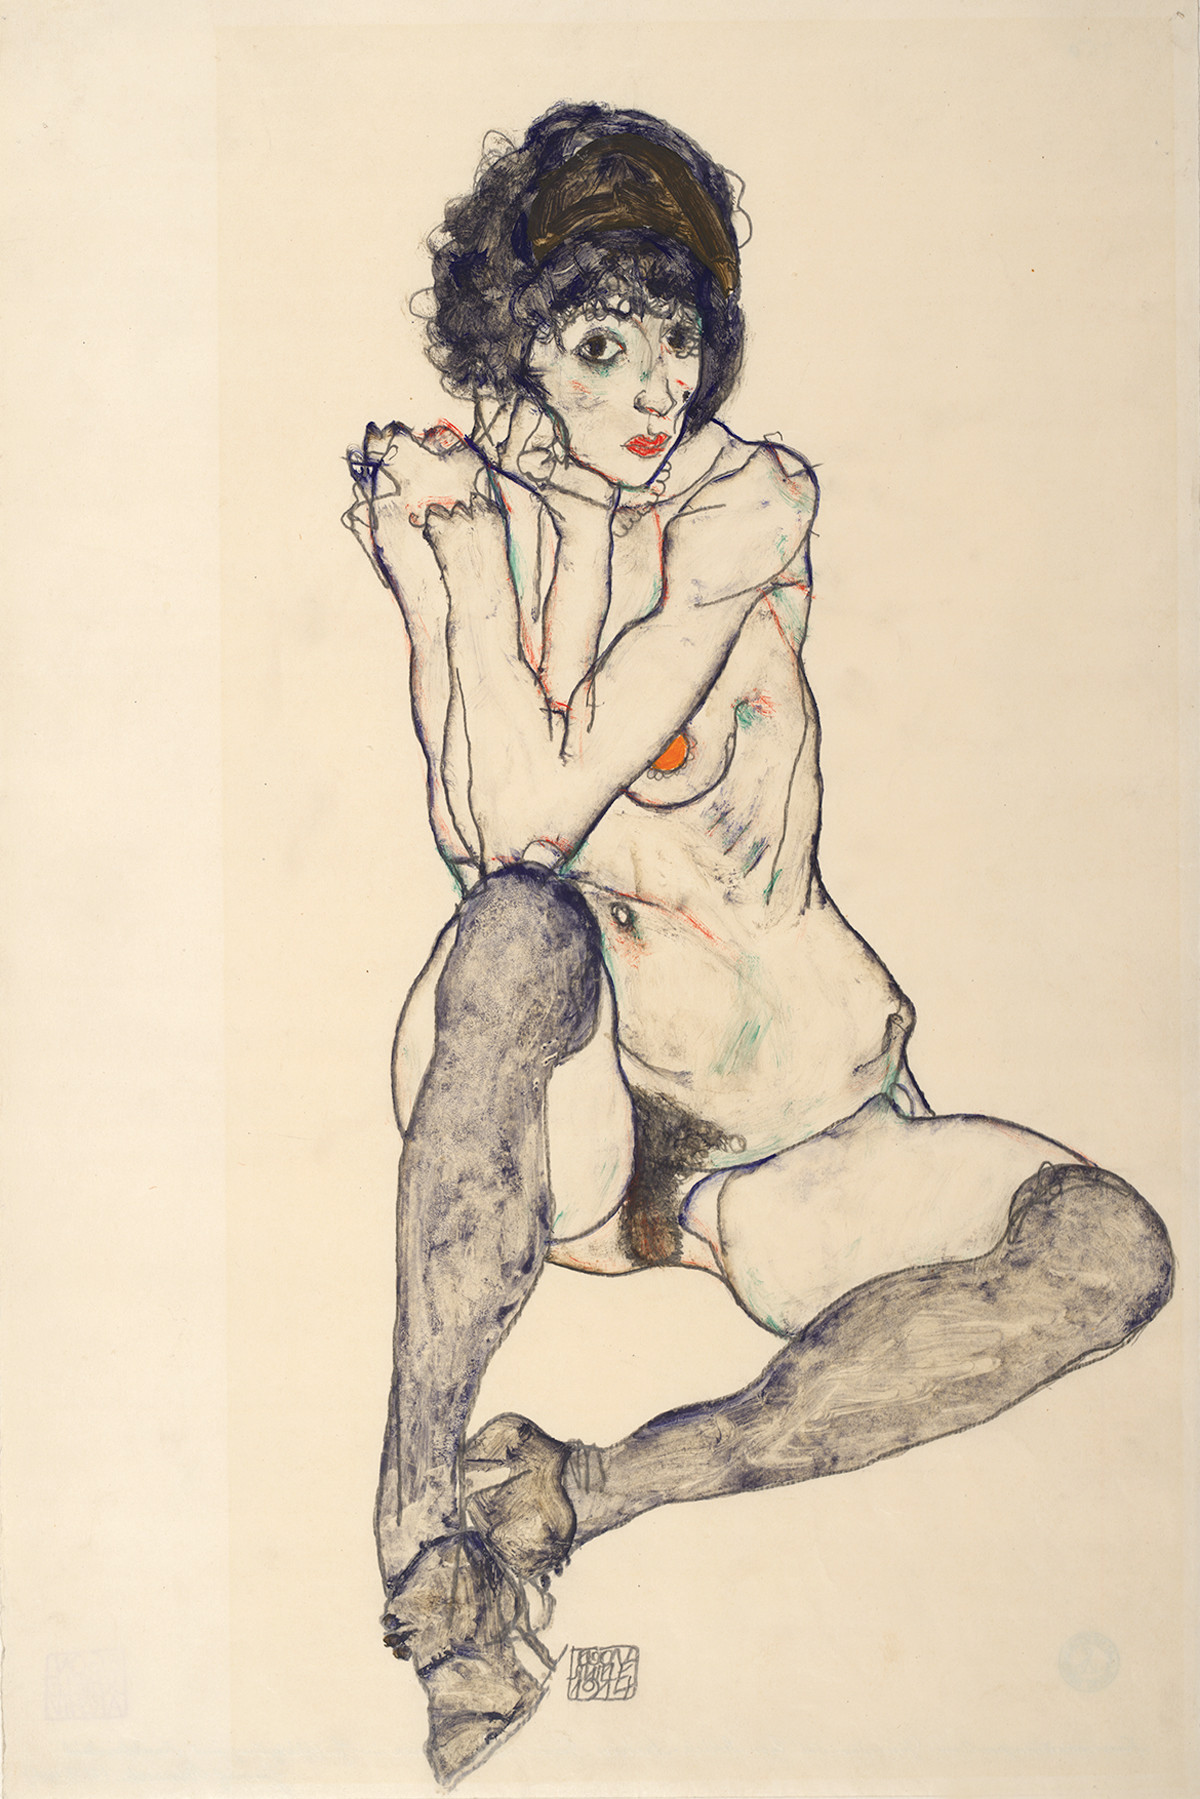 Egon Schiele, Seated Female Nude, Elbows Resting on Right Knee, 1914. Graphite and gouache on Japan paper. 48 x 32 cm. The Albertina Museum, Vienna. Exhibition organised by the Royal Academy of Arts, London and the Albertina Museum, Vienna